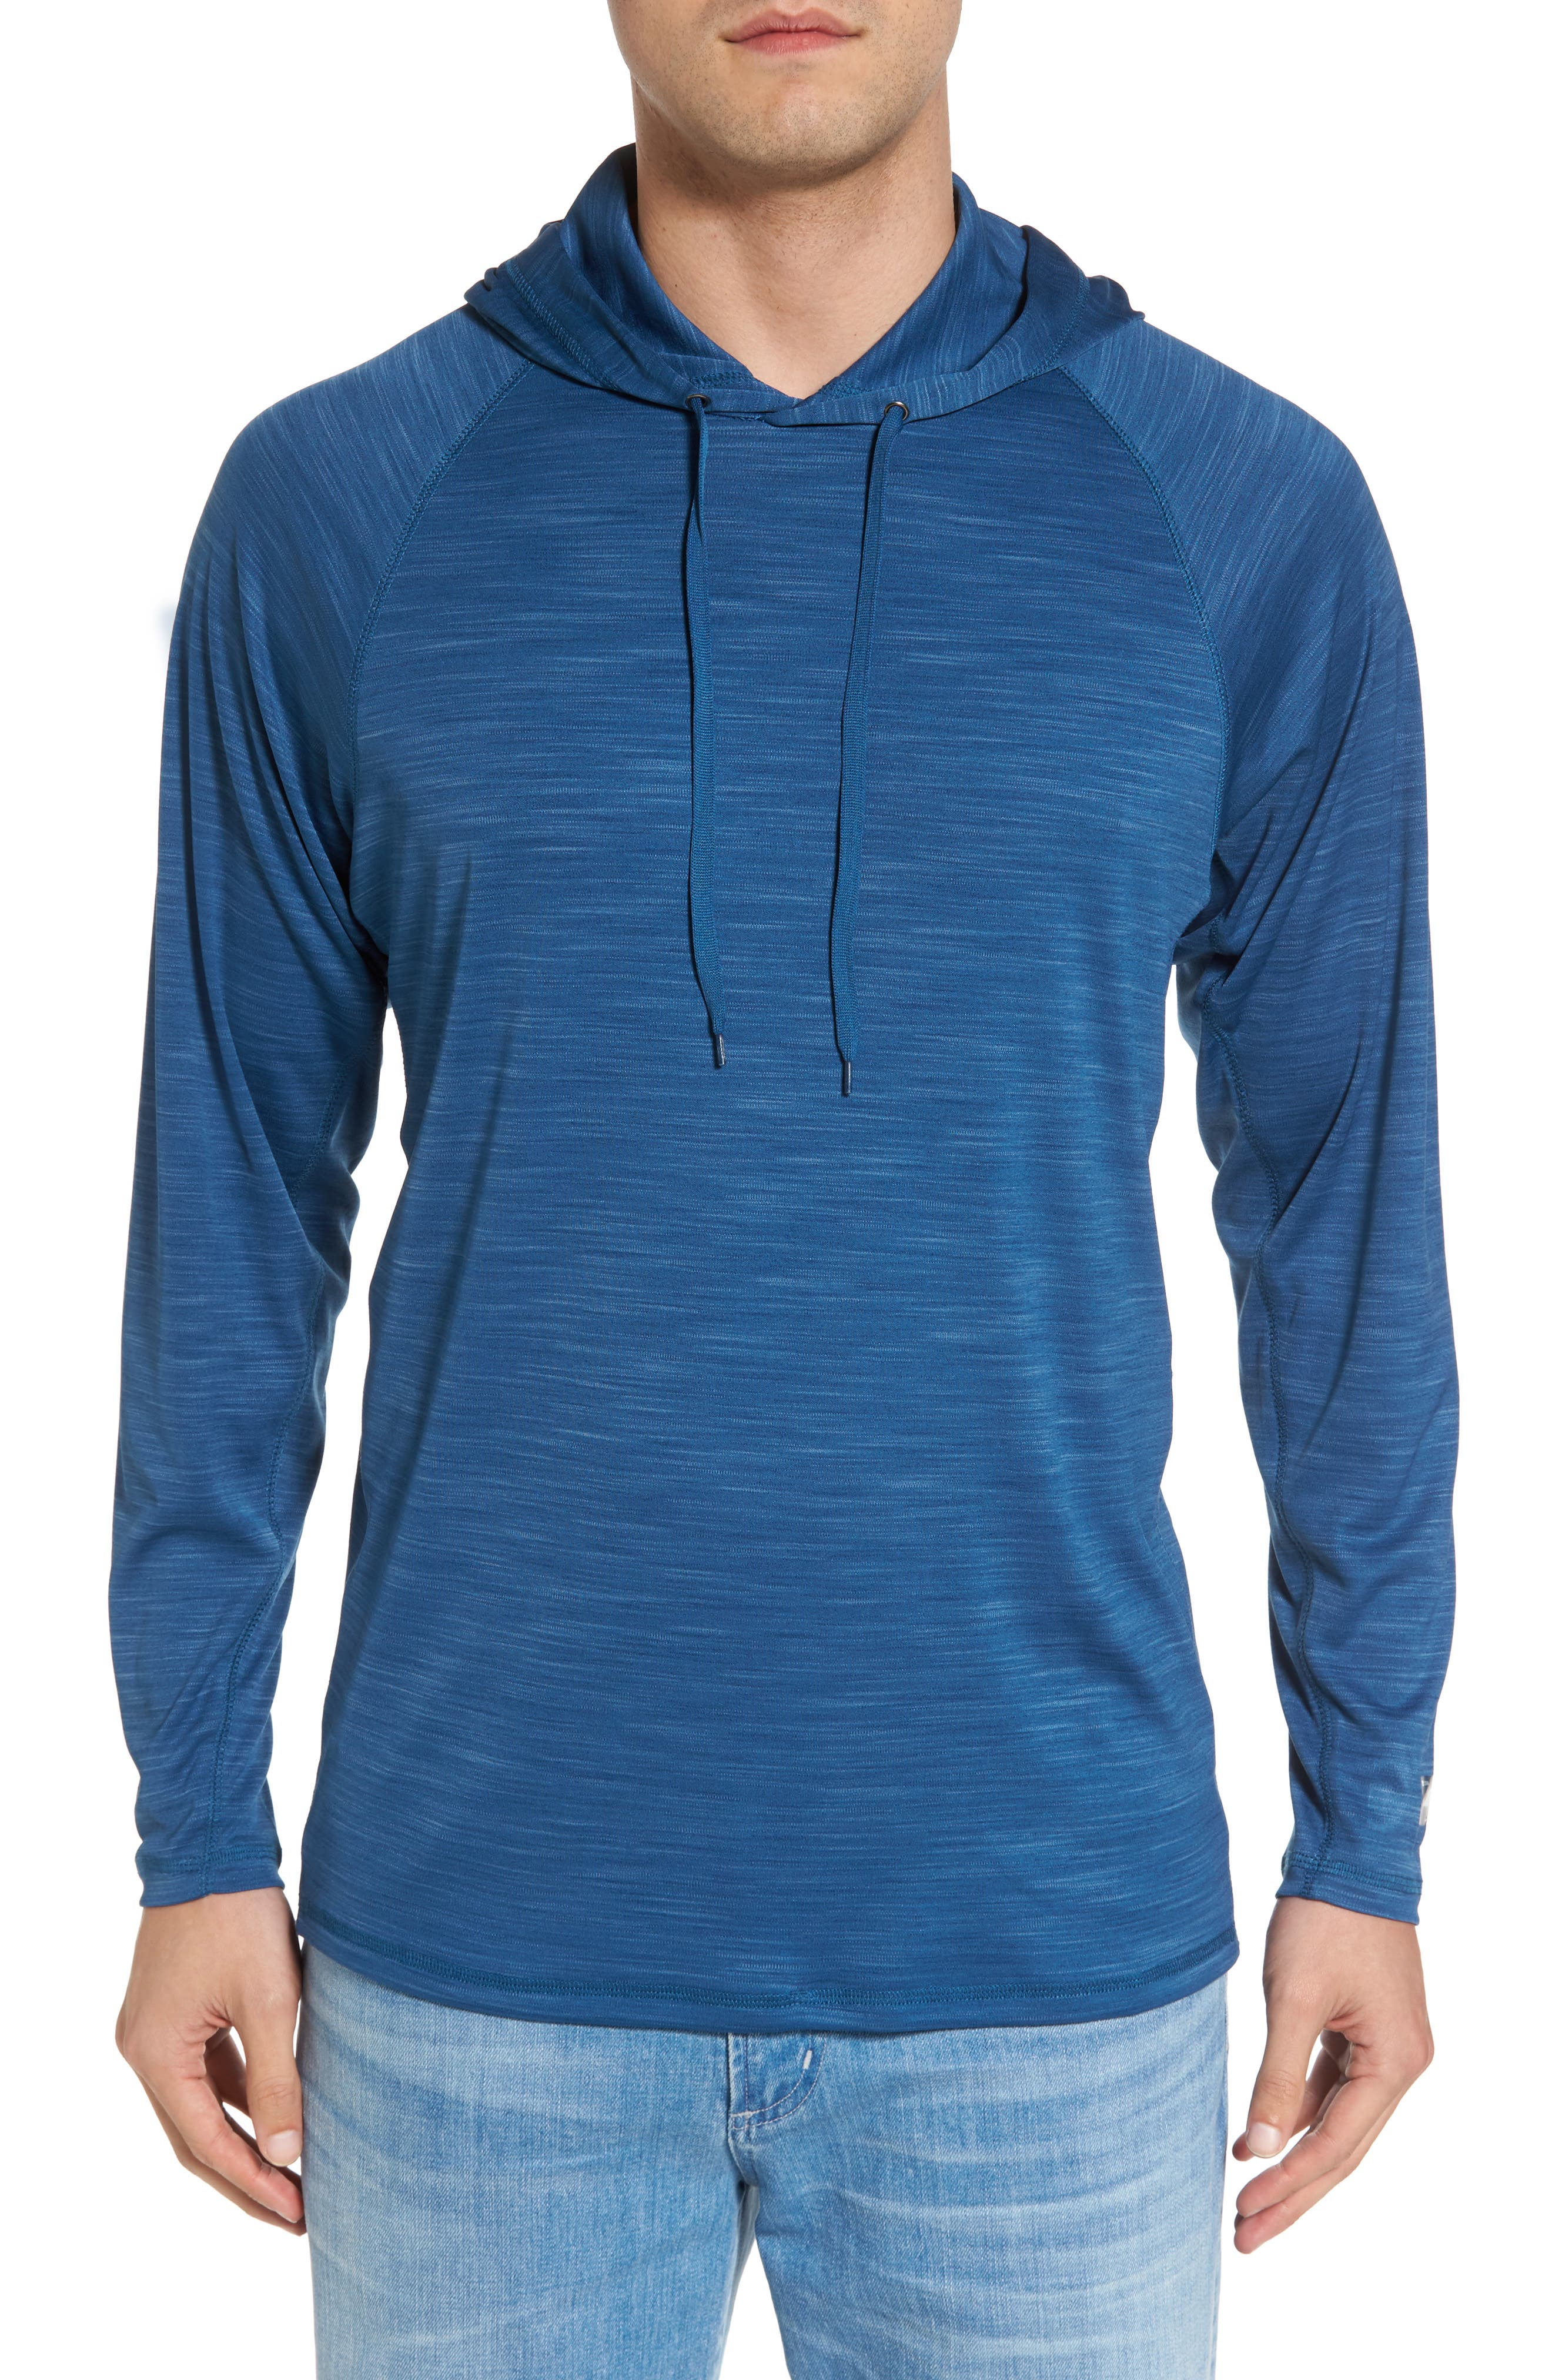 Undercover Hooded Long Sleeve Performance T-Shirt,                             Main thumbnail 2, color,